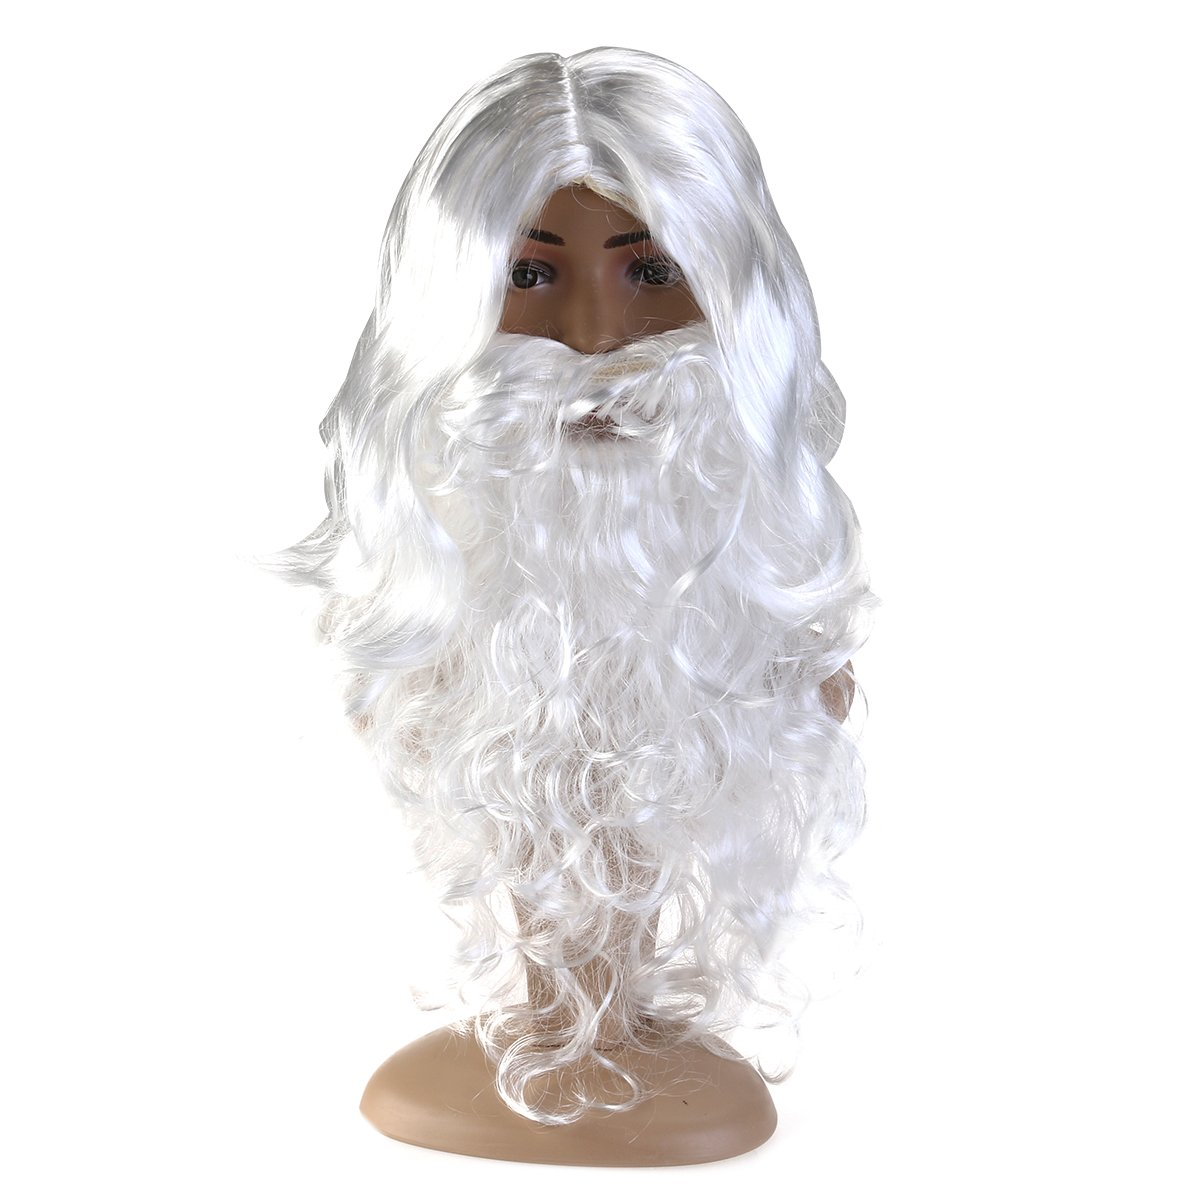 LUOEM Santa Wig Beard Set Deluxe White Santa Fancy Dress Costume Wizard Wig and Beard for Christmas Halloween Party by LUOEM